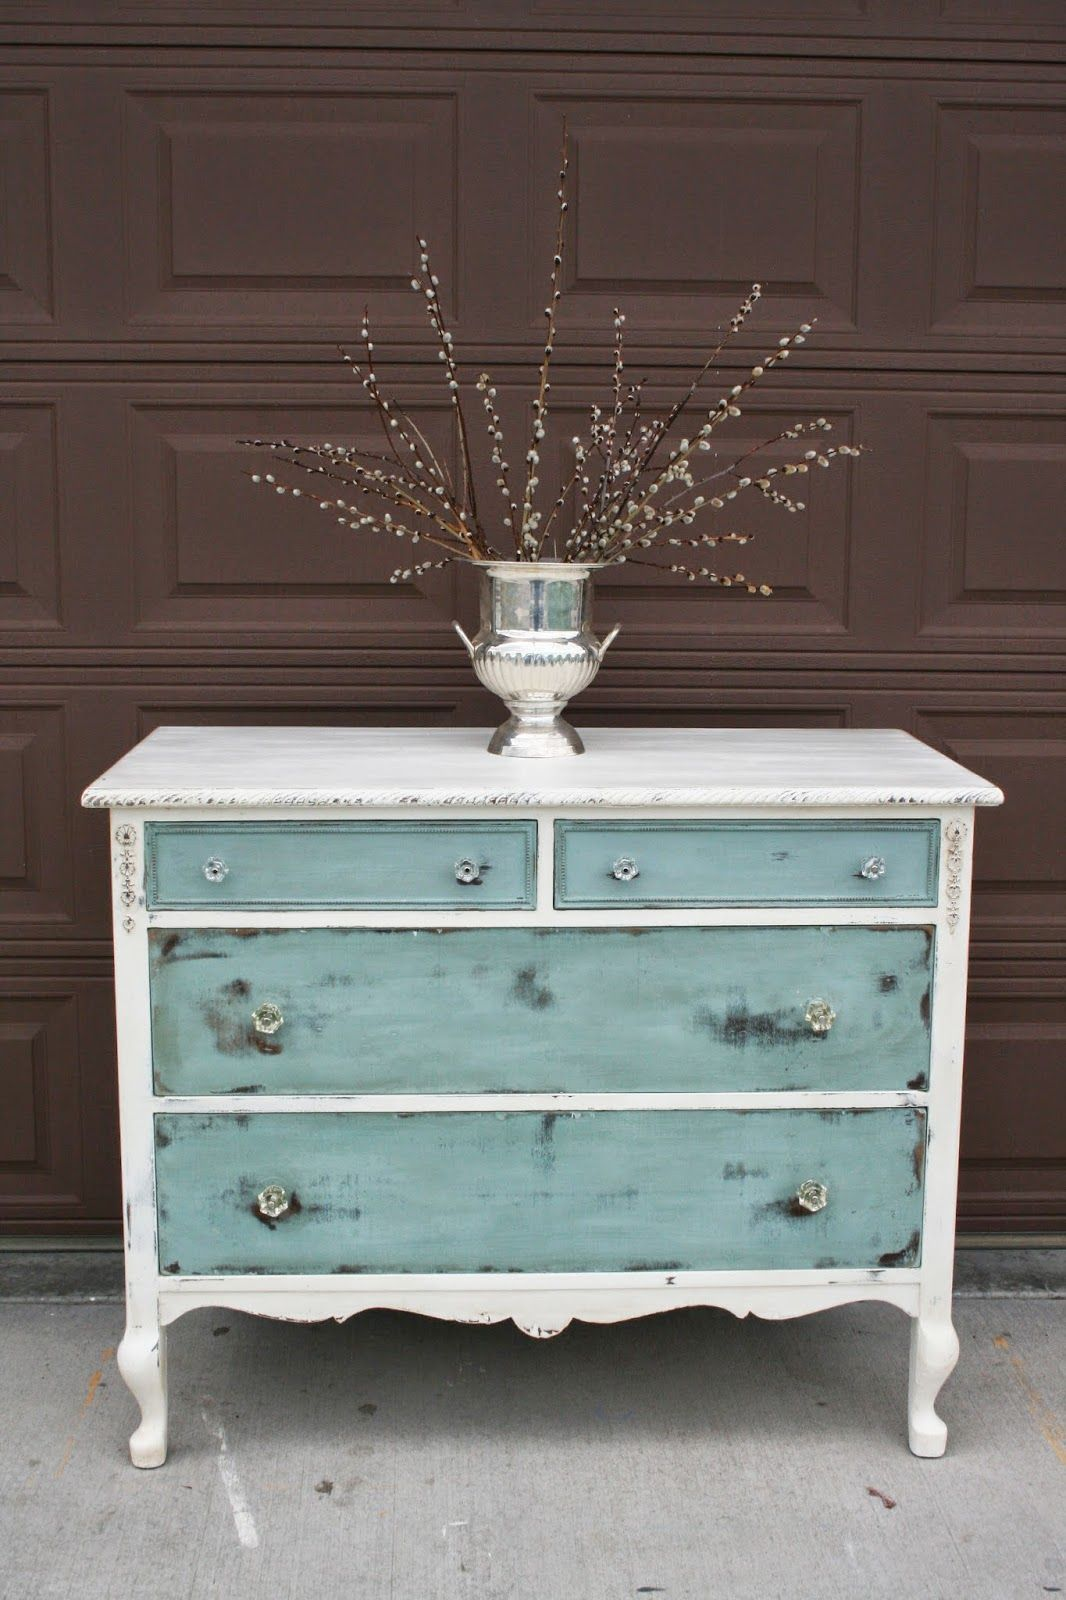 Antique Dresser Makeover For Storage / Rustic Country Bathroom - Antique Recreation: At Long Last... Furniture Upcycles